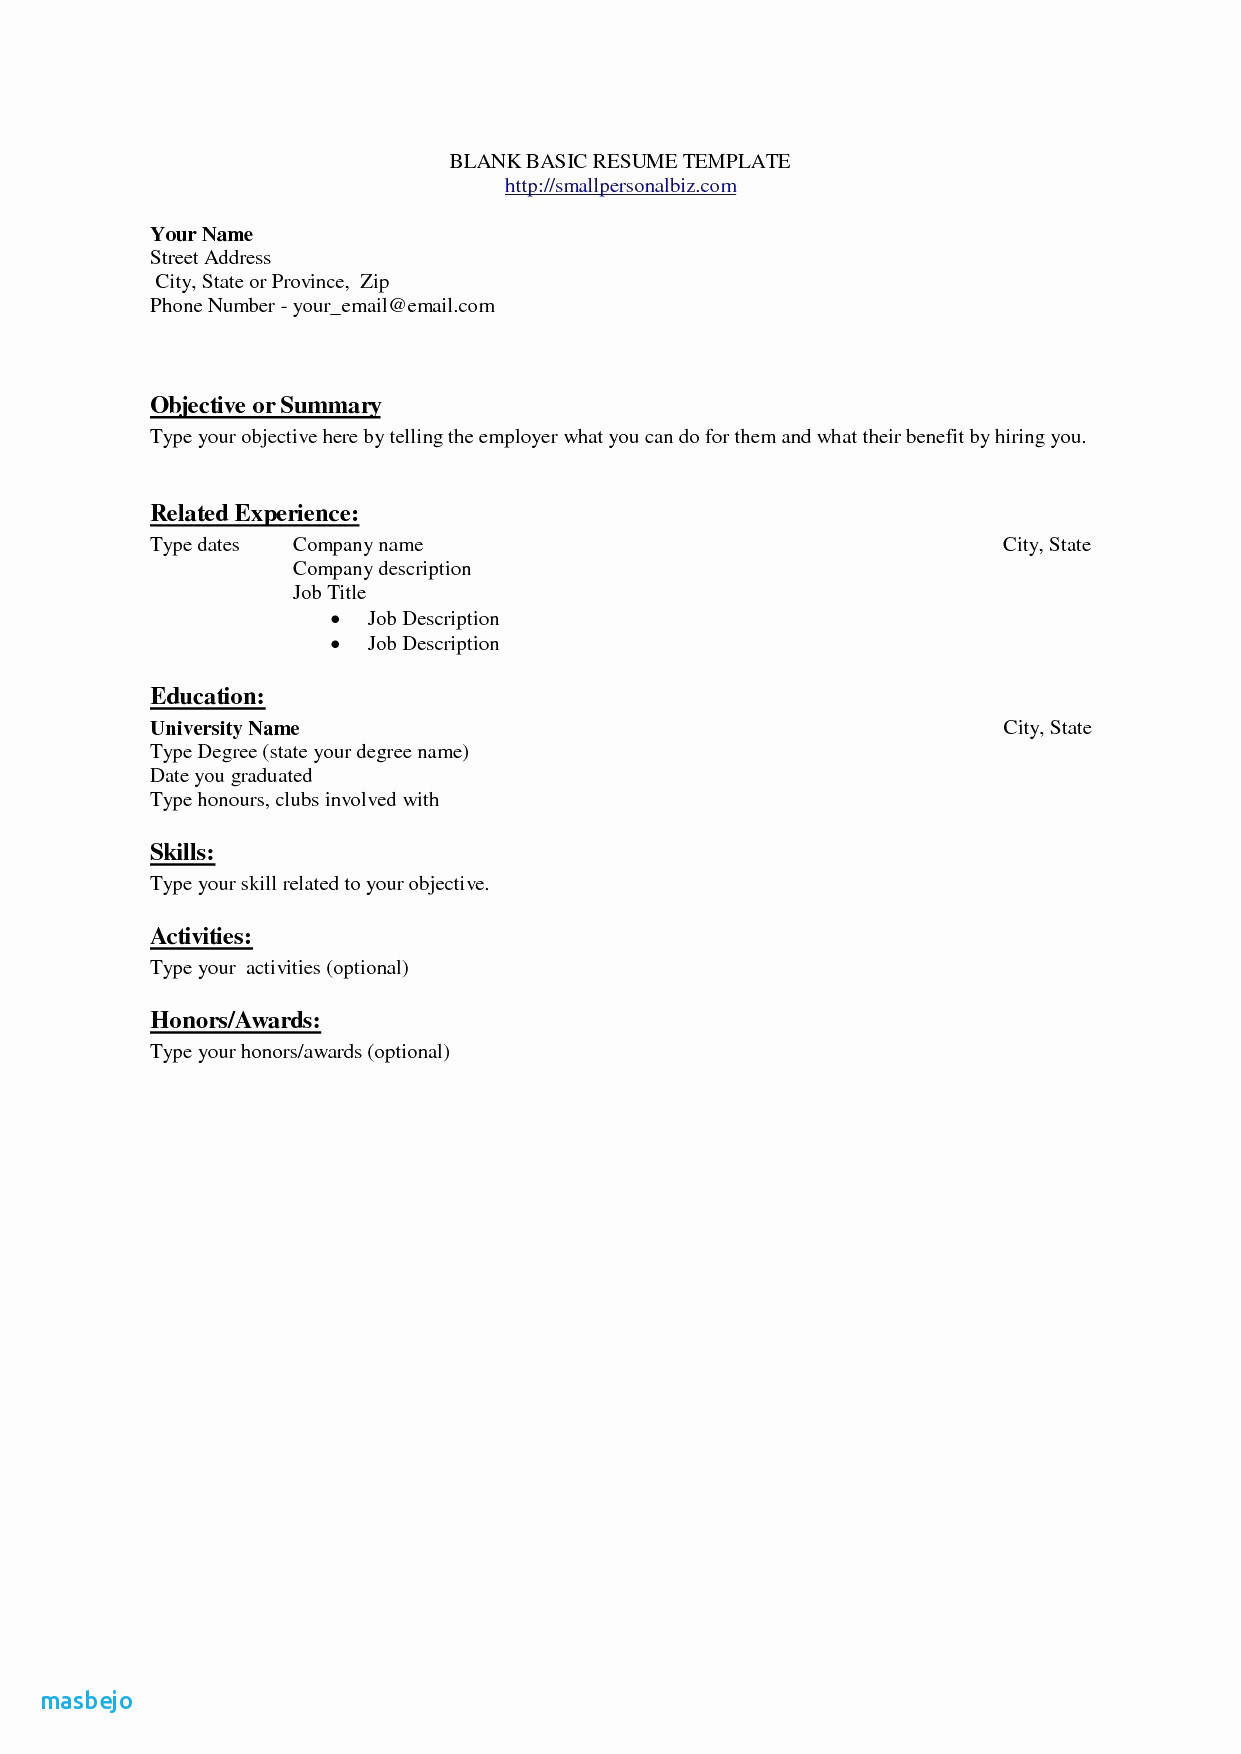 Linkedin Resume Upload - Linkedin Resume Unique Experienced Rn Resume Fresh Nurse Resume 0d